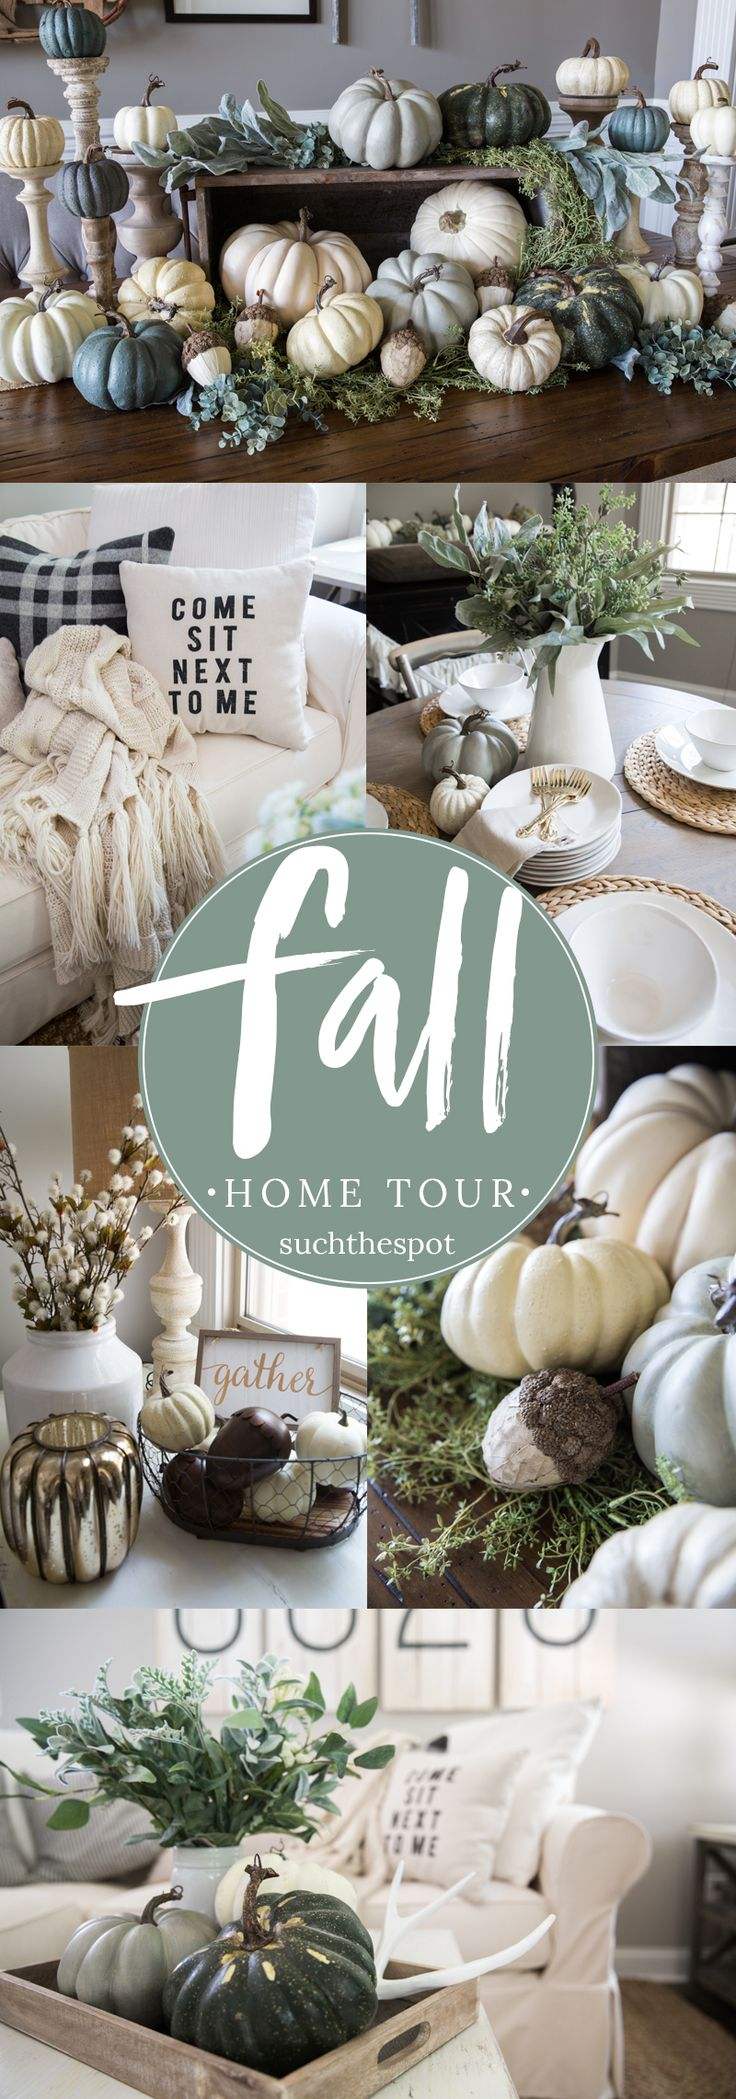 Fall Decor Ideas - From the family room to the farm table centerpiece, I'm sharing simple ideas for DIY fall decorating that will add a seasonal touch to your modern farmhouse.